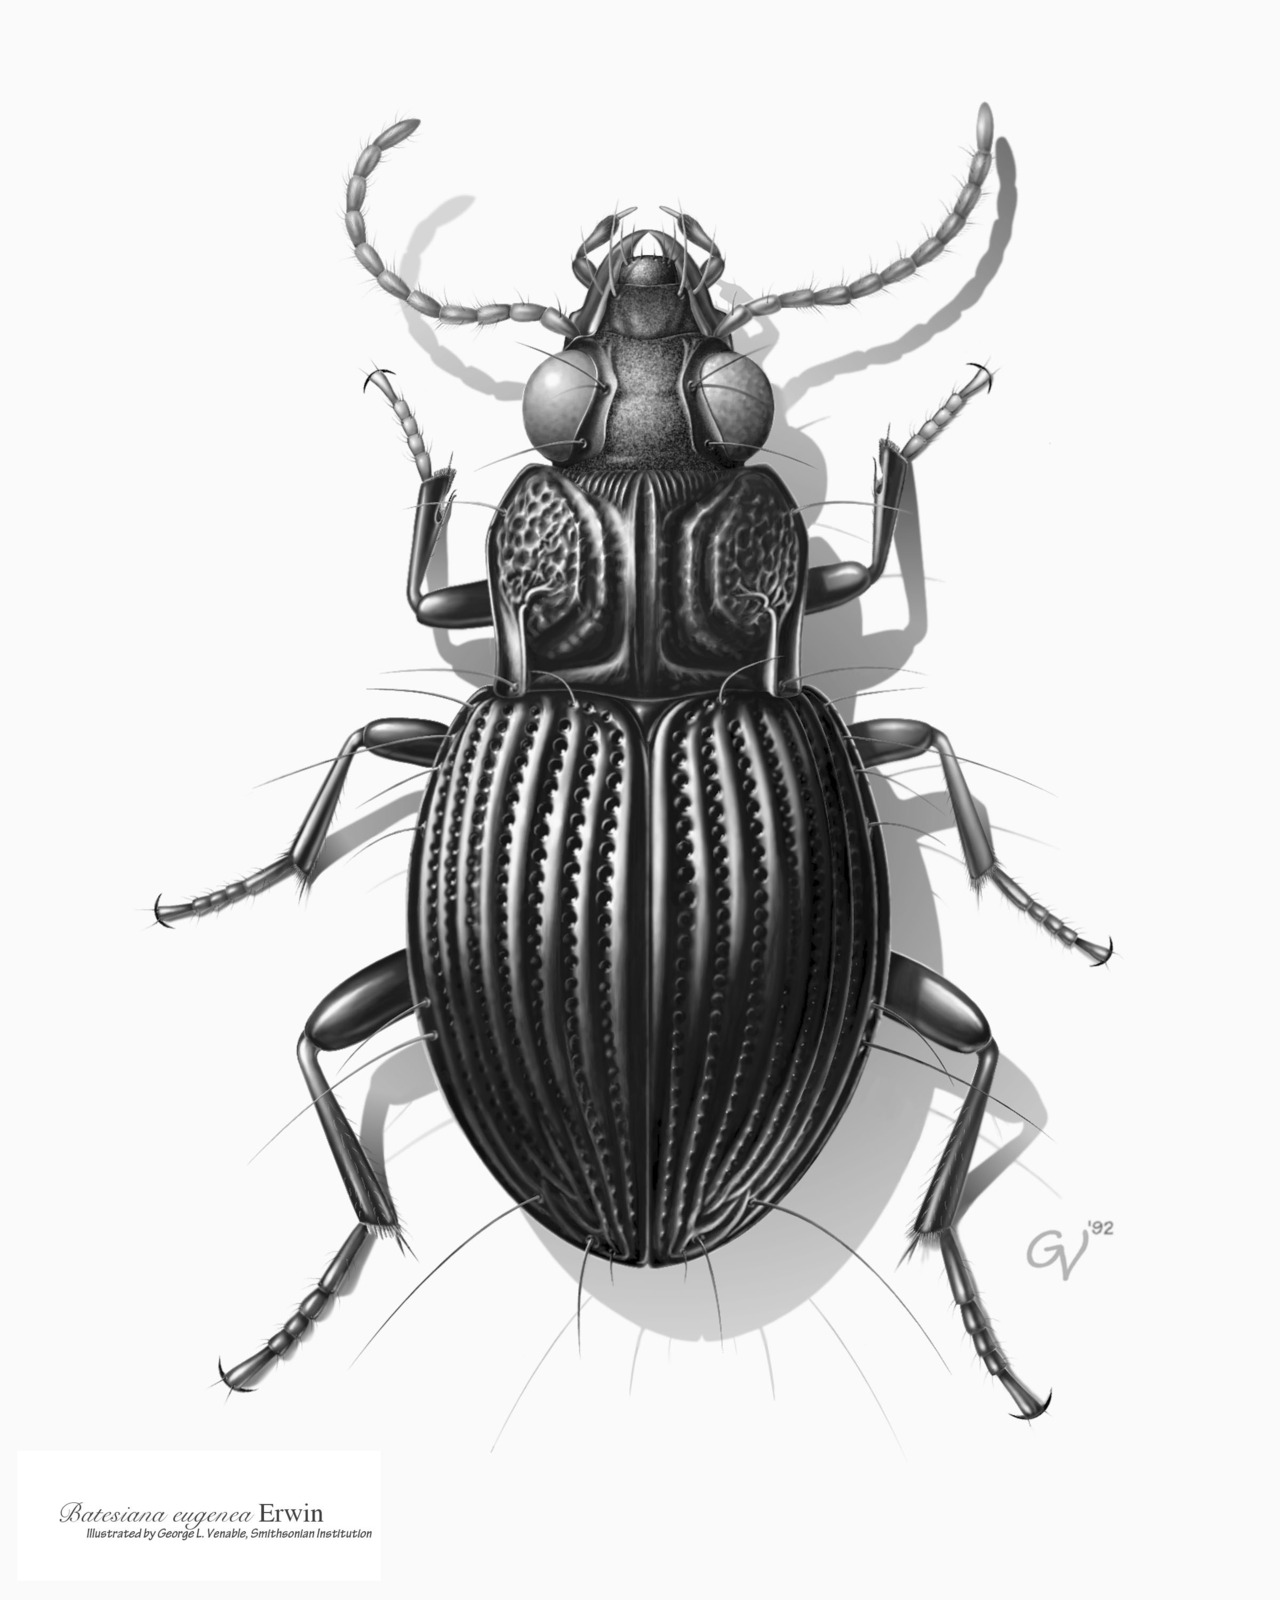 Drawn bugs beetle A America Drawing Drawing Credit: